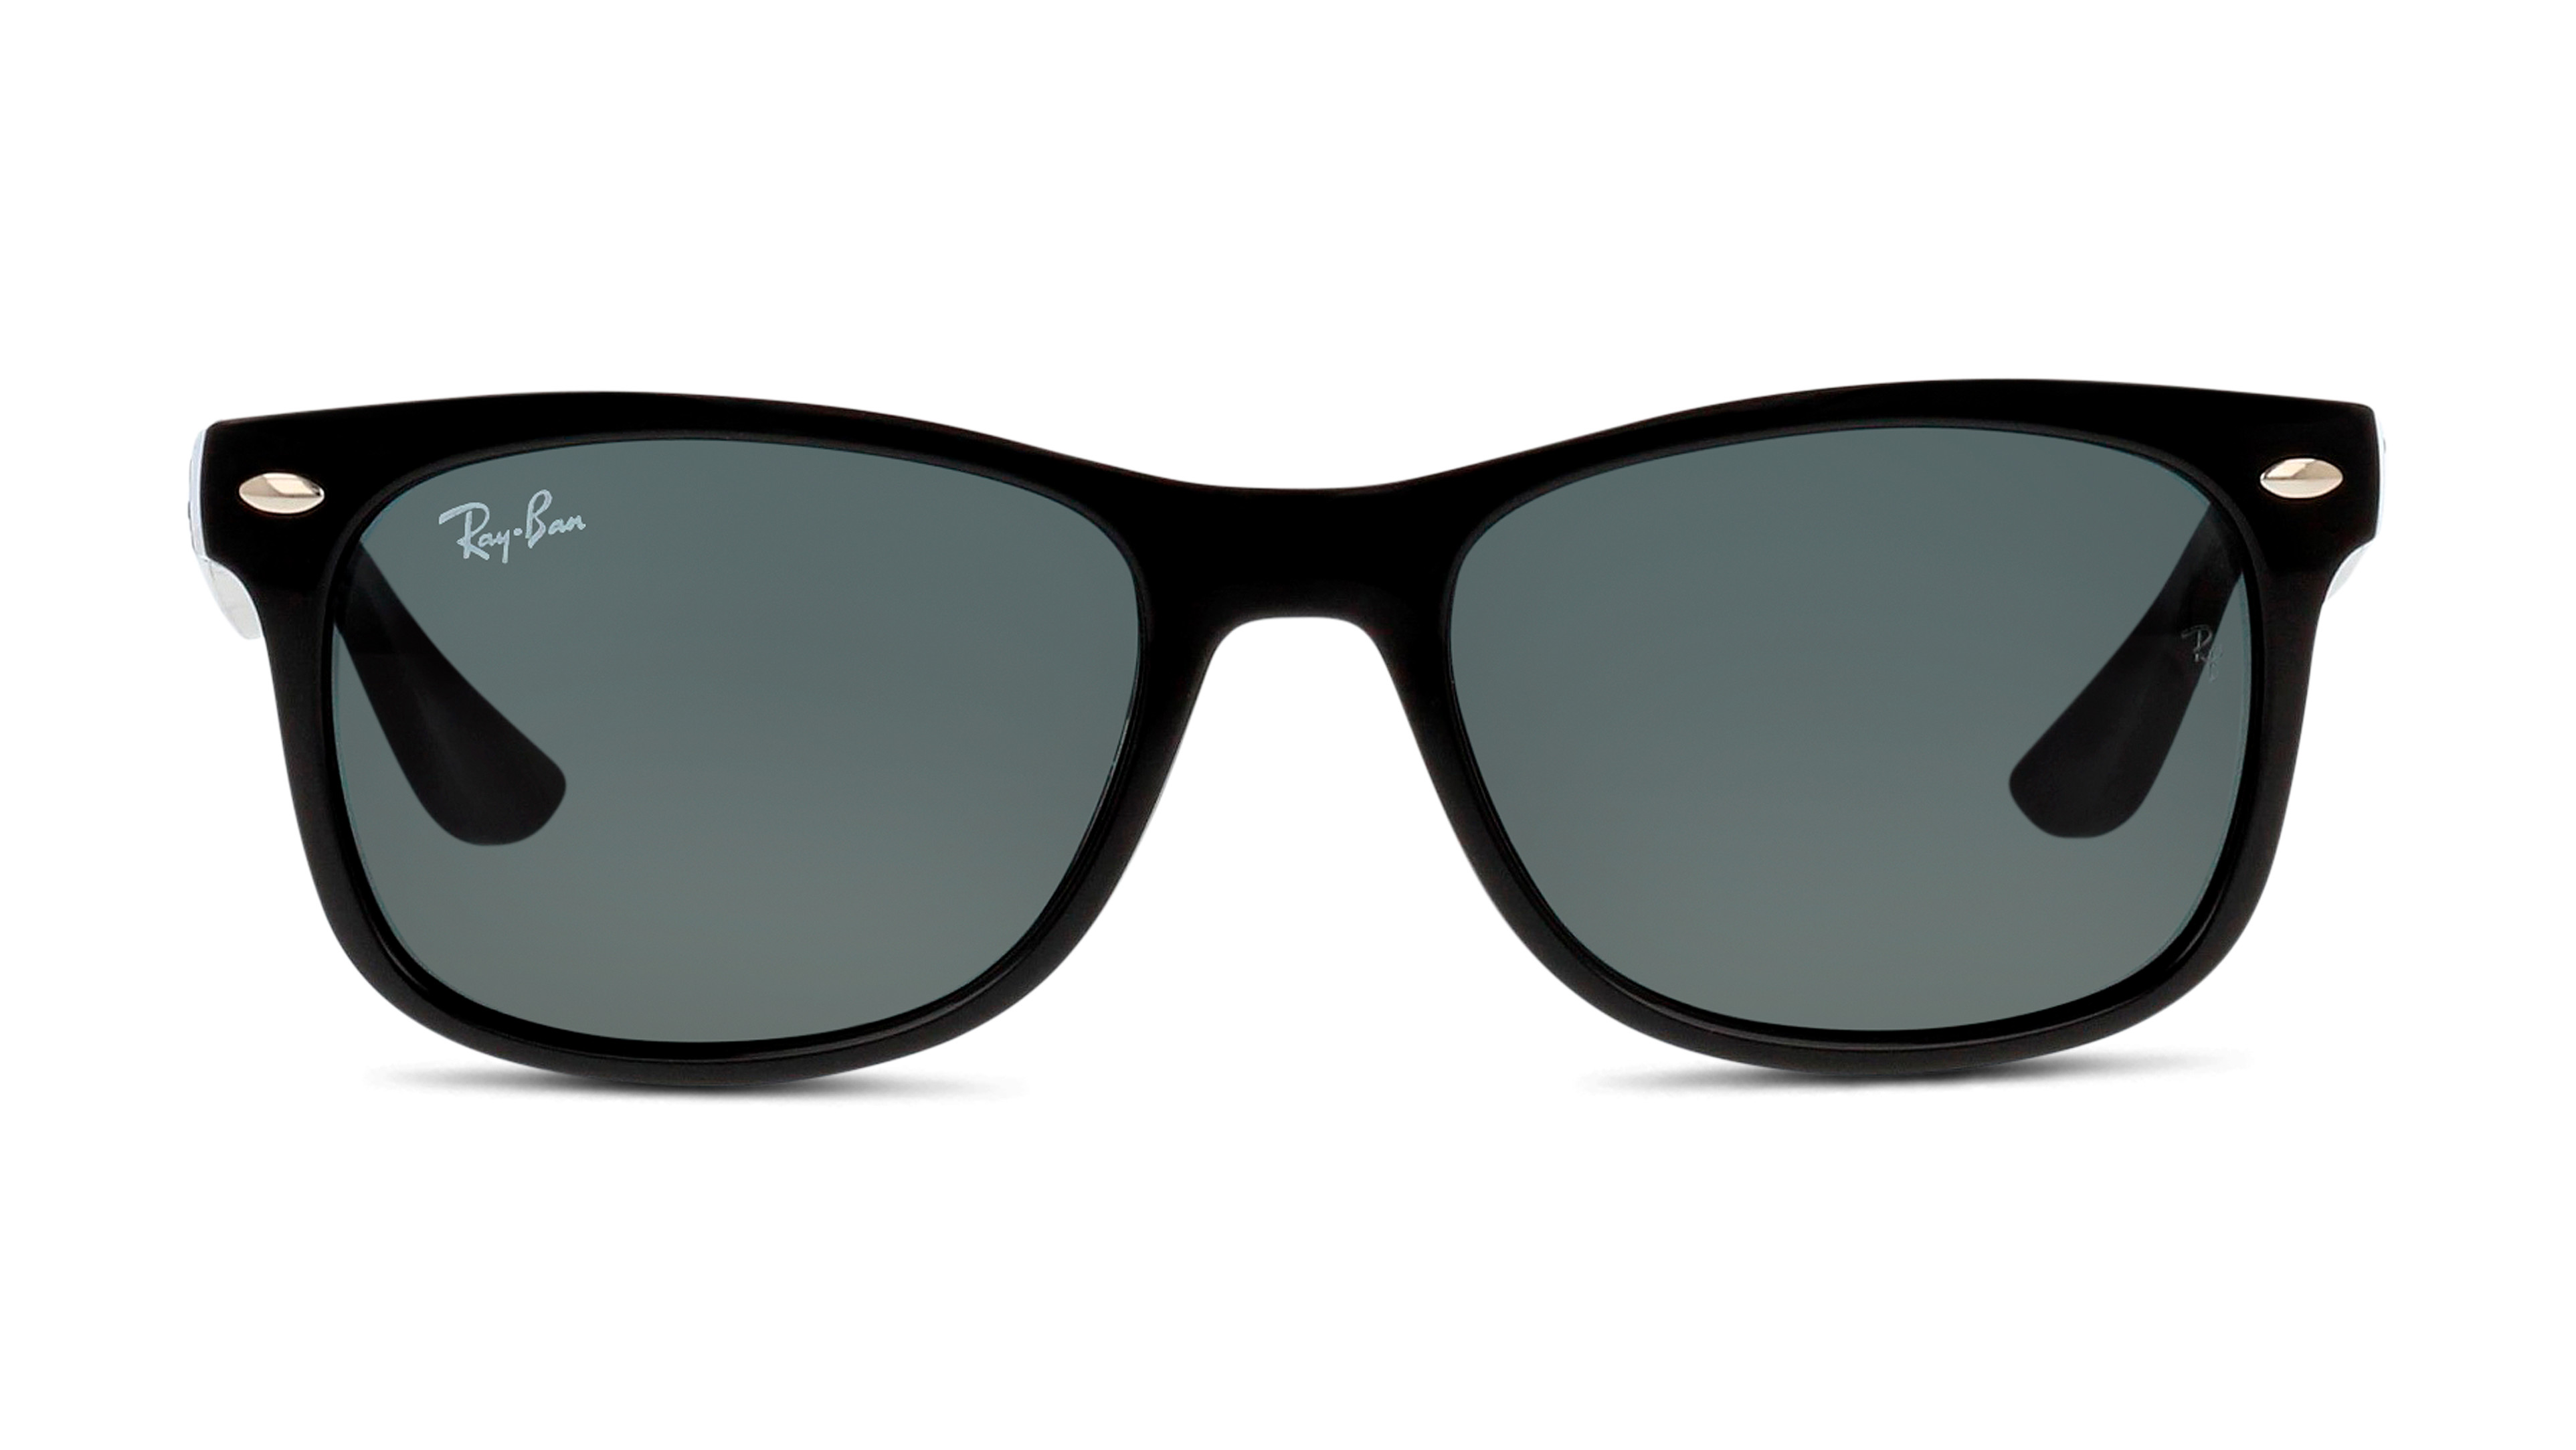 ray ban junior sonnenbrille mit sehstärke,ray ban new